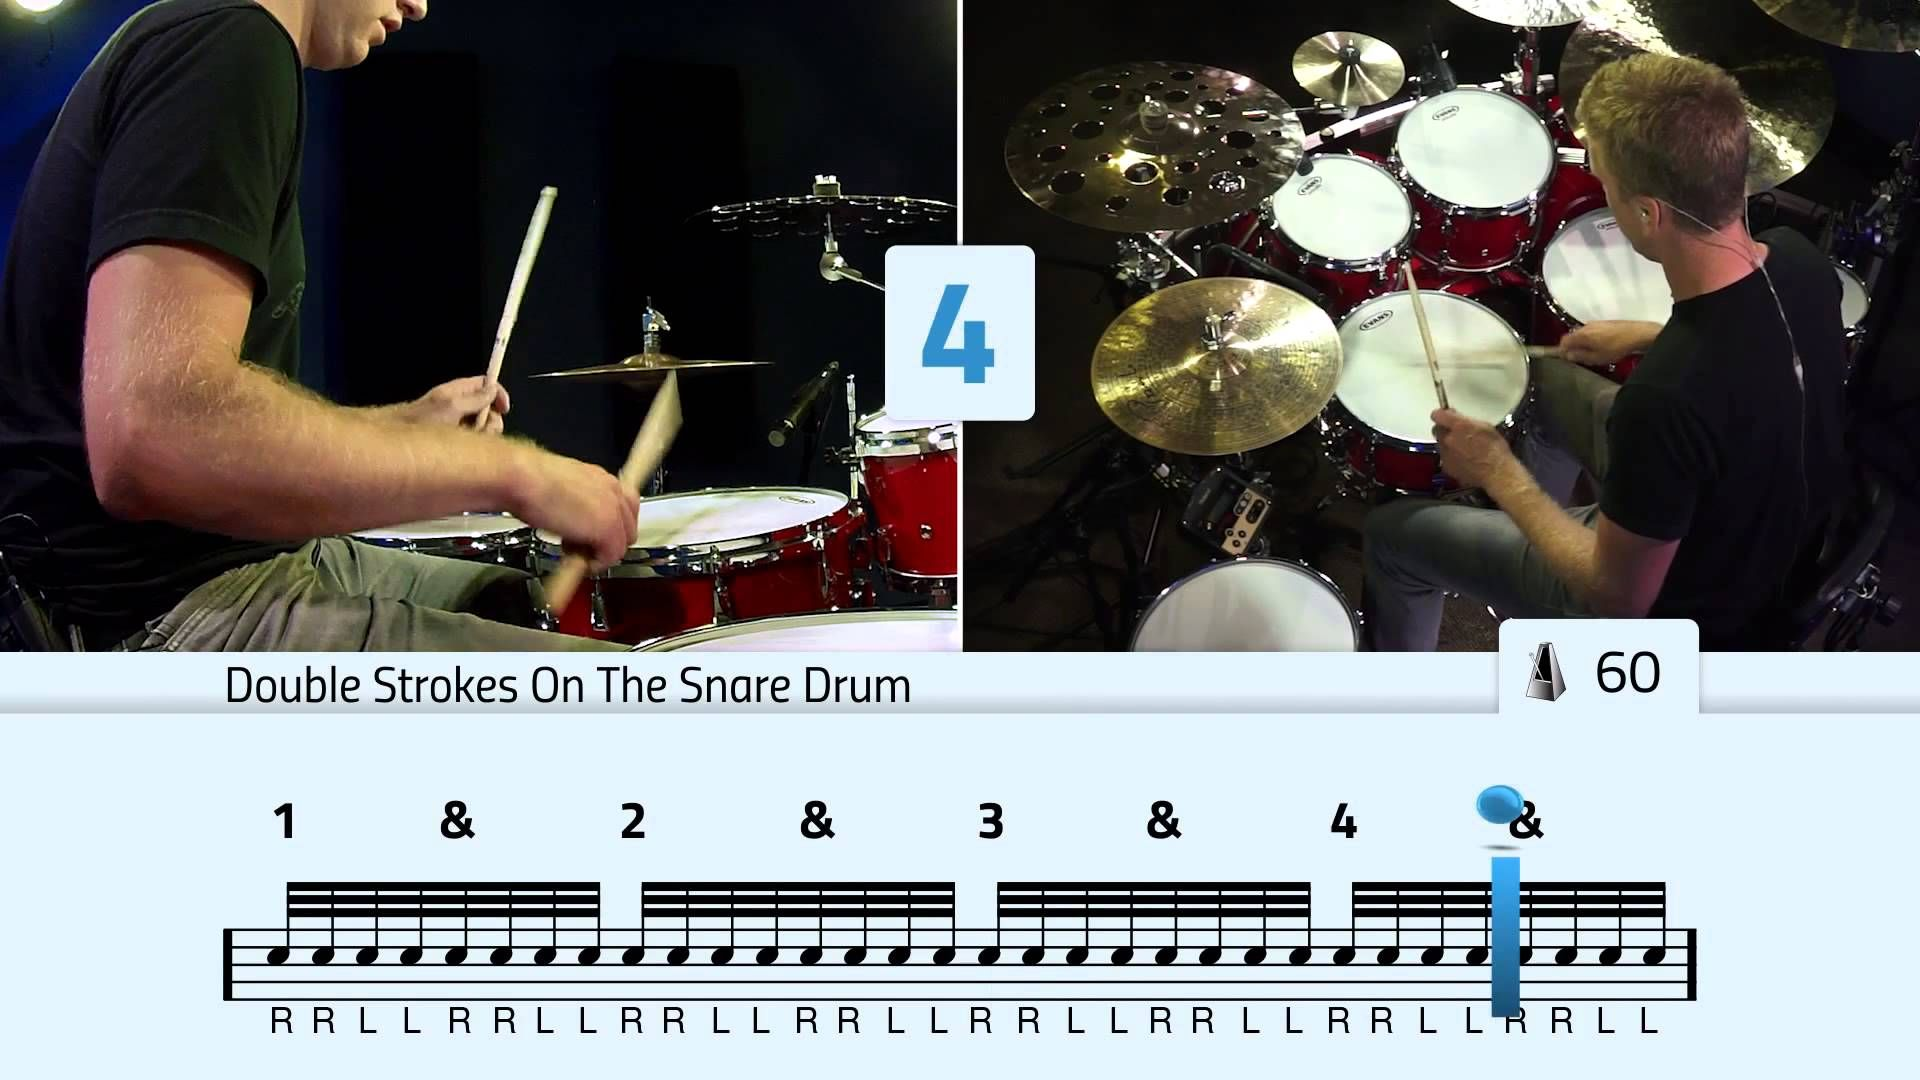 Double Stroke Rolls On The Toms Free Drum Lessons Drum